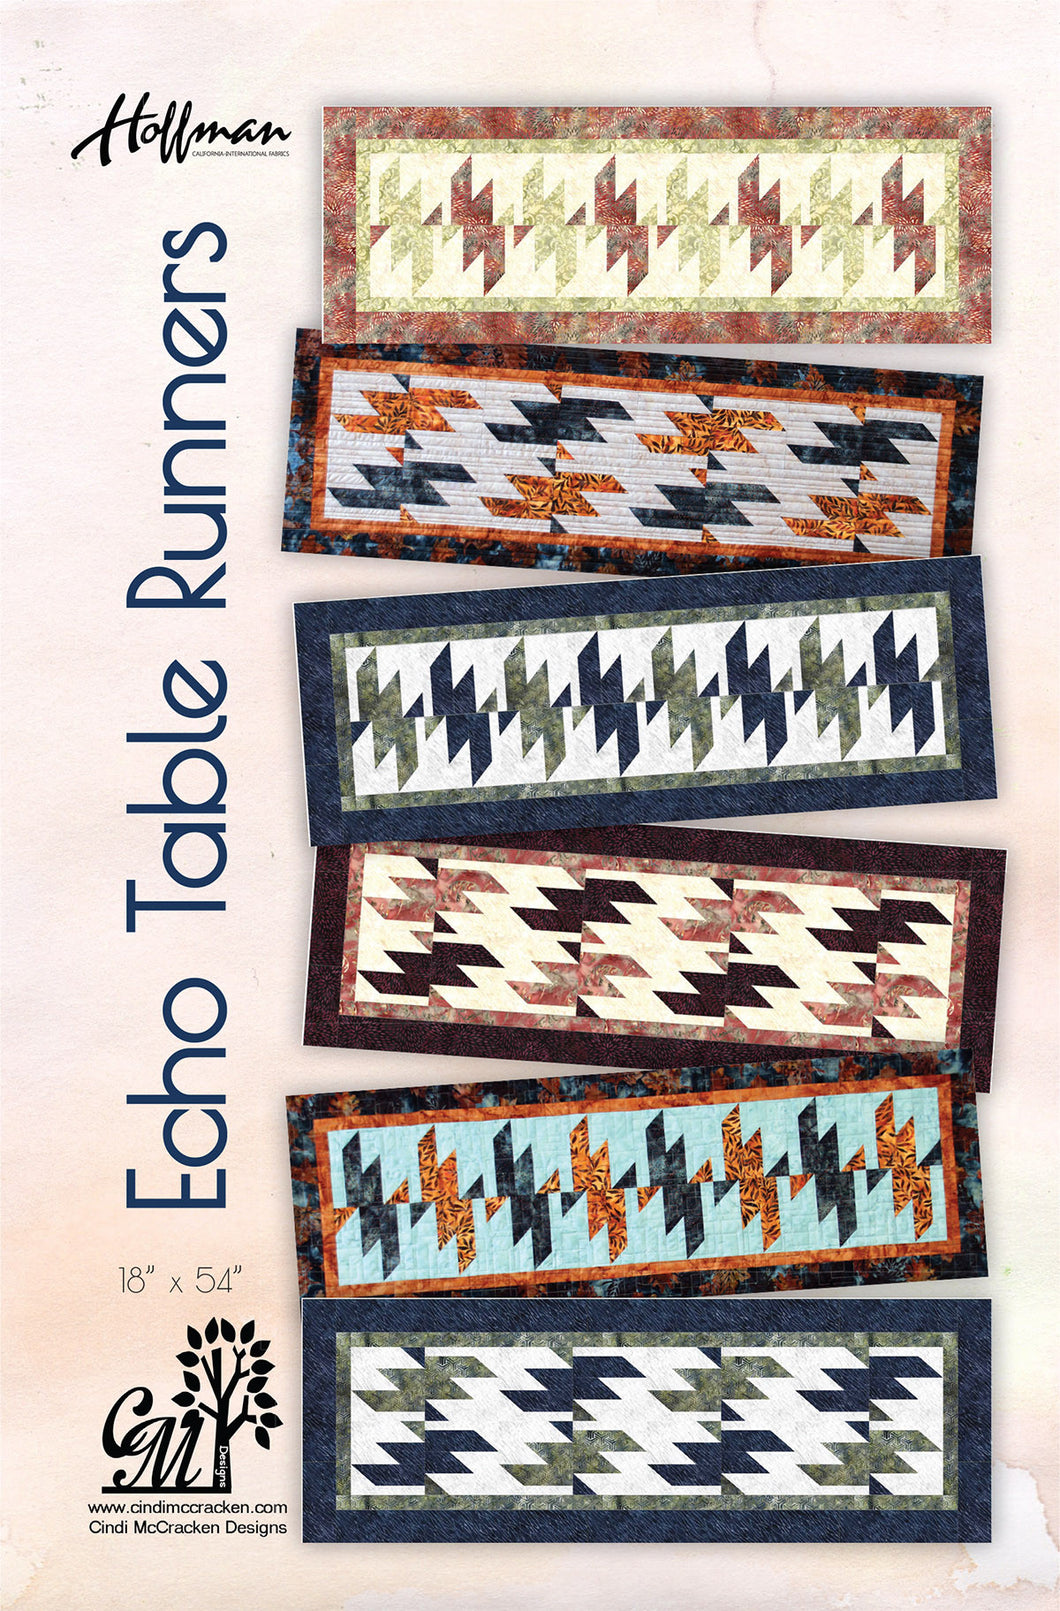 Echo Table Runner